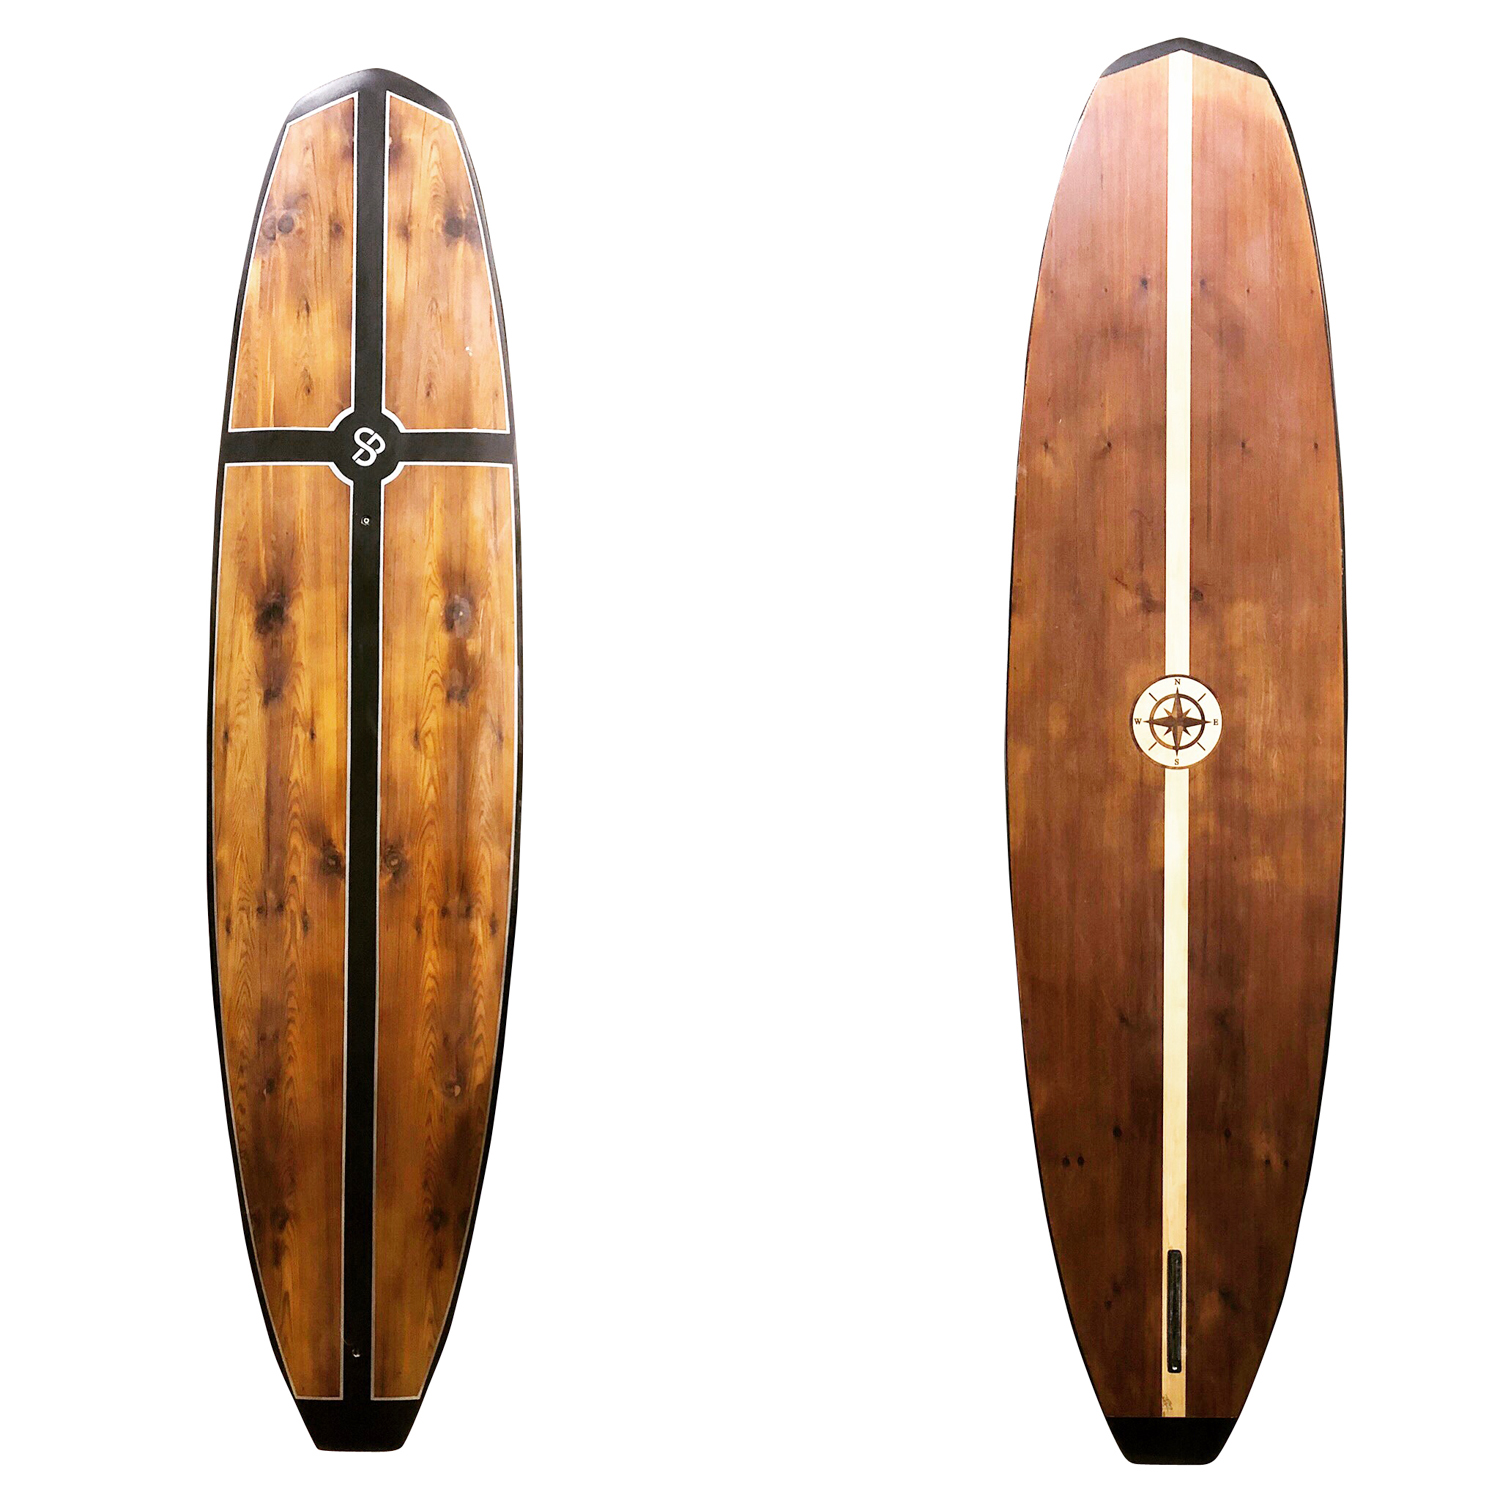 Handcrafted Wood Paddleboard